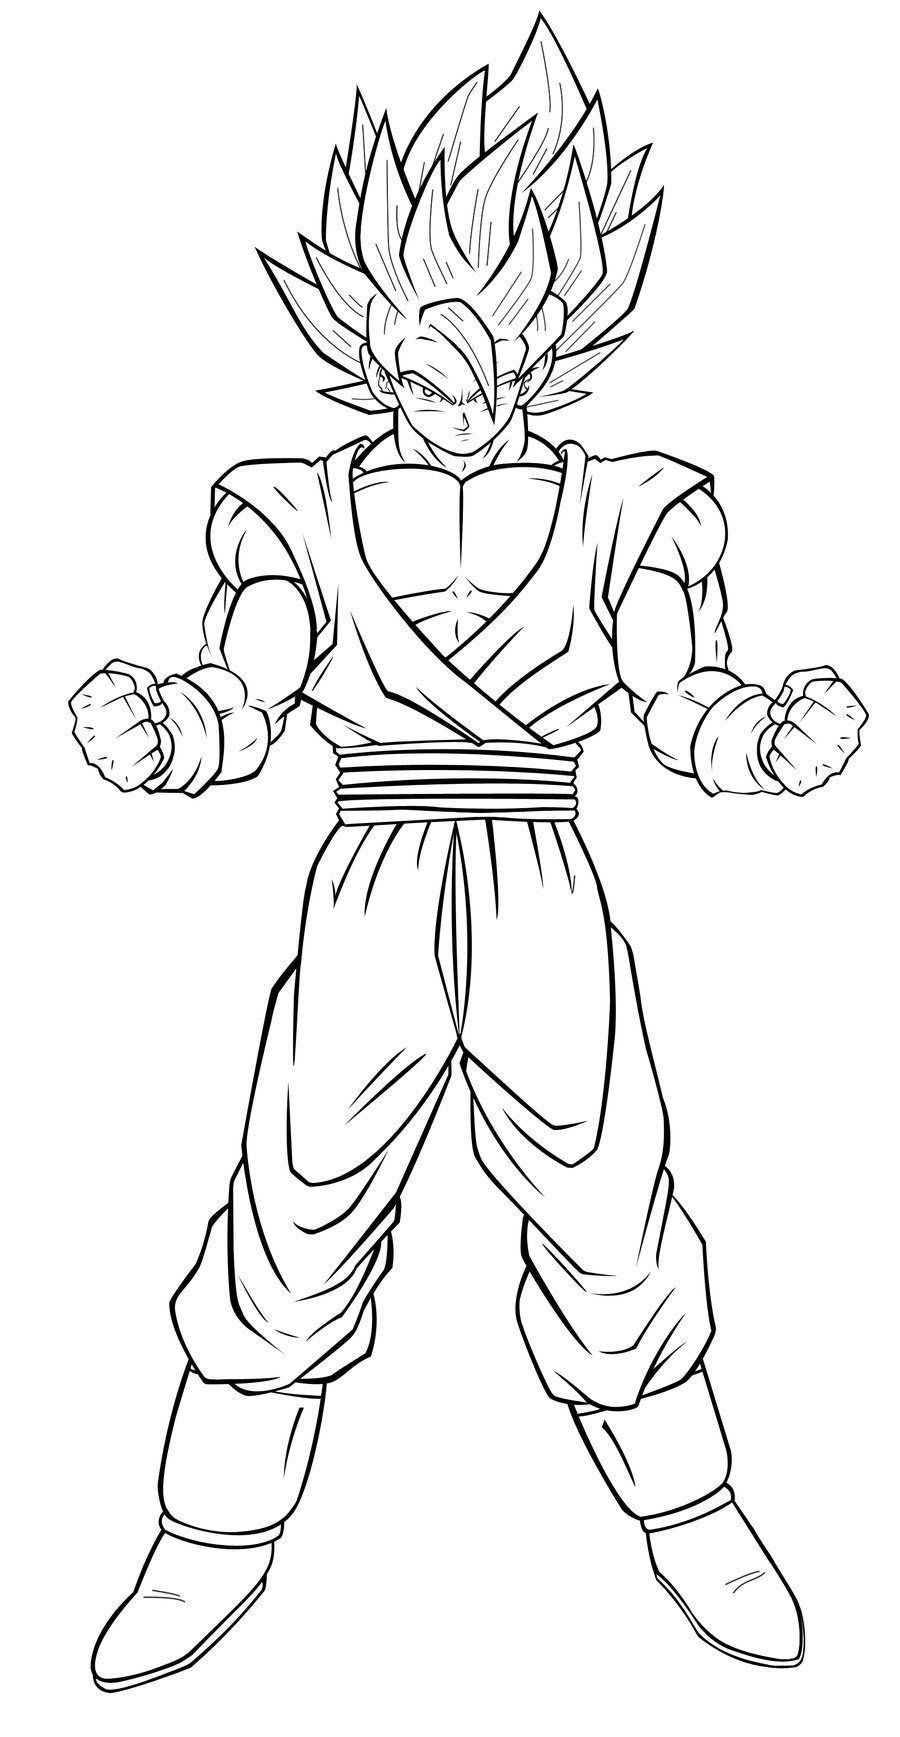 Dragon Ball Coloring Page Youngandtae Com In 2020 Dragon Ball Image Dragon Coloring Page Super Coloring Pages